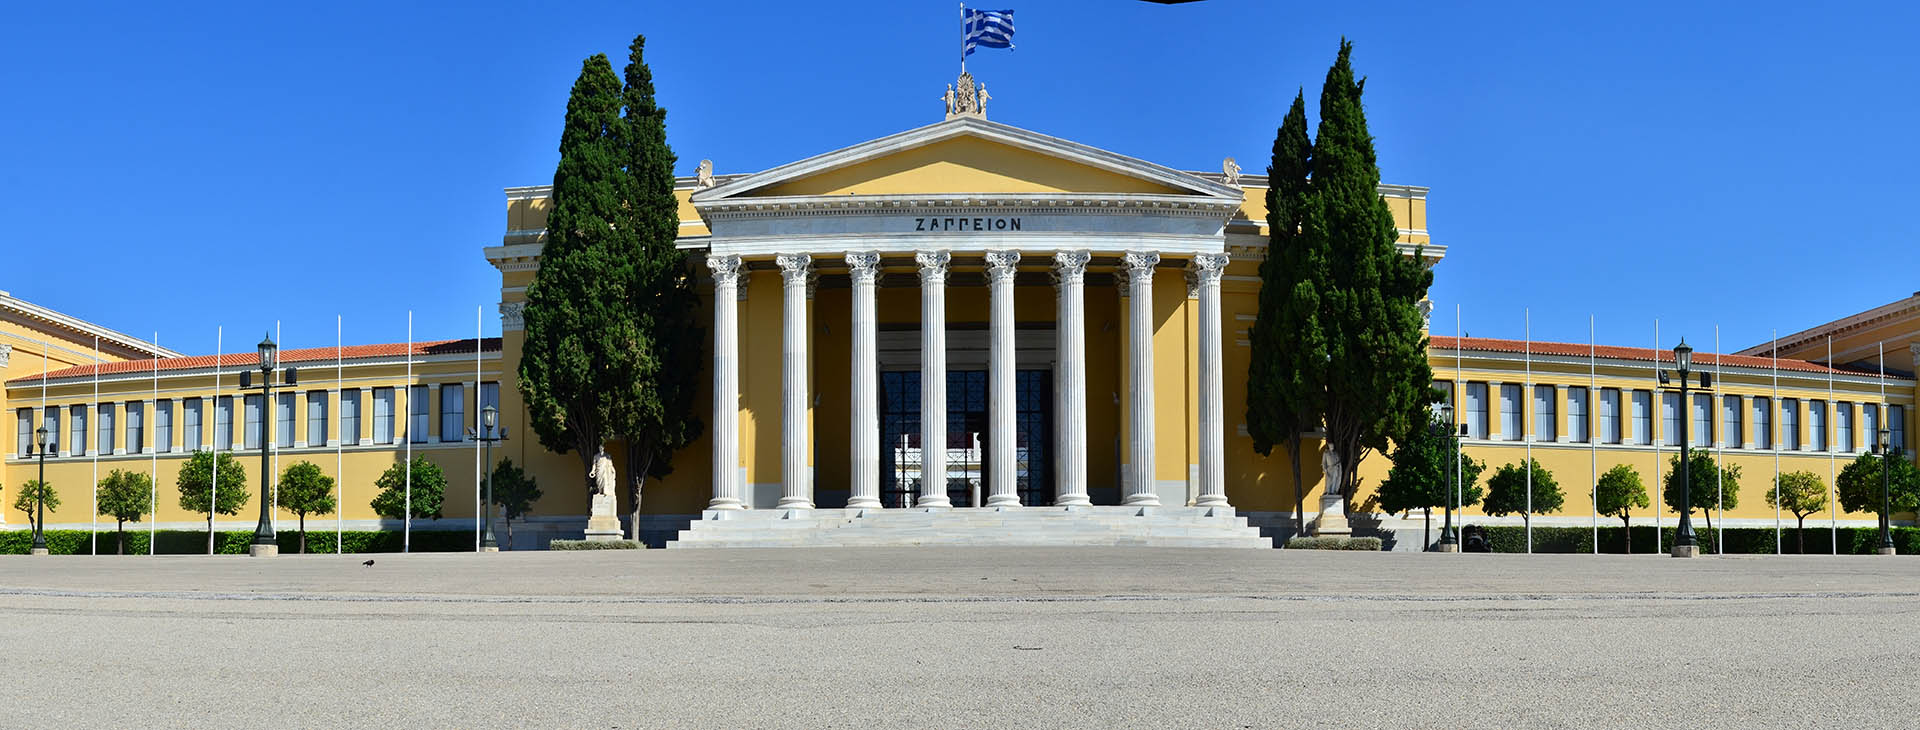 The Zappeion Hall, Athens